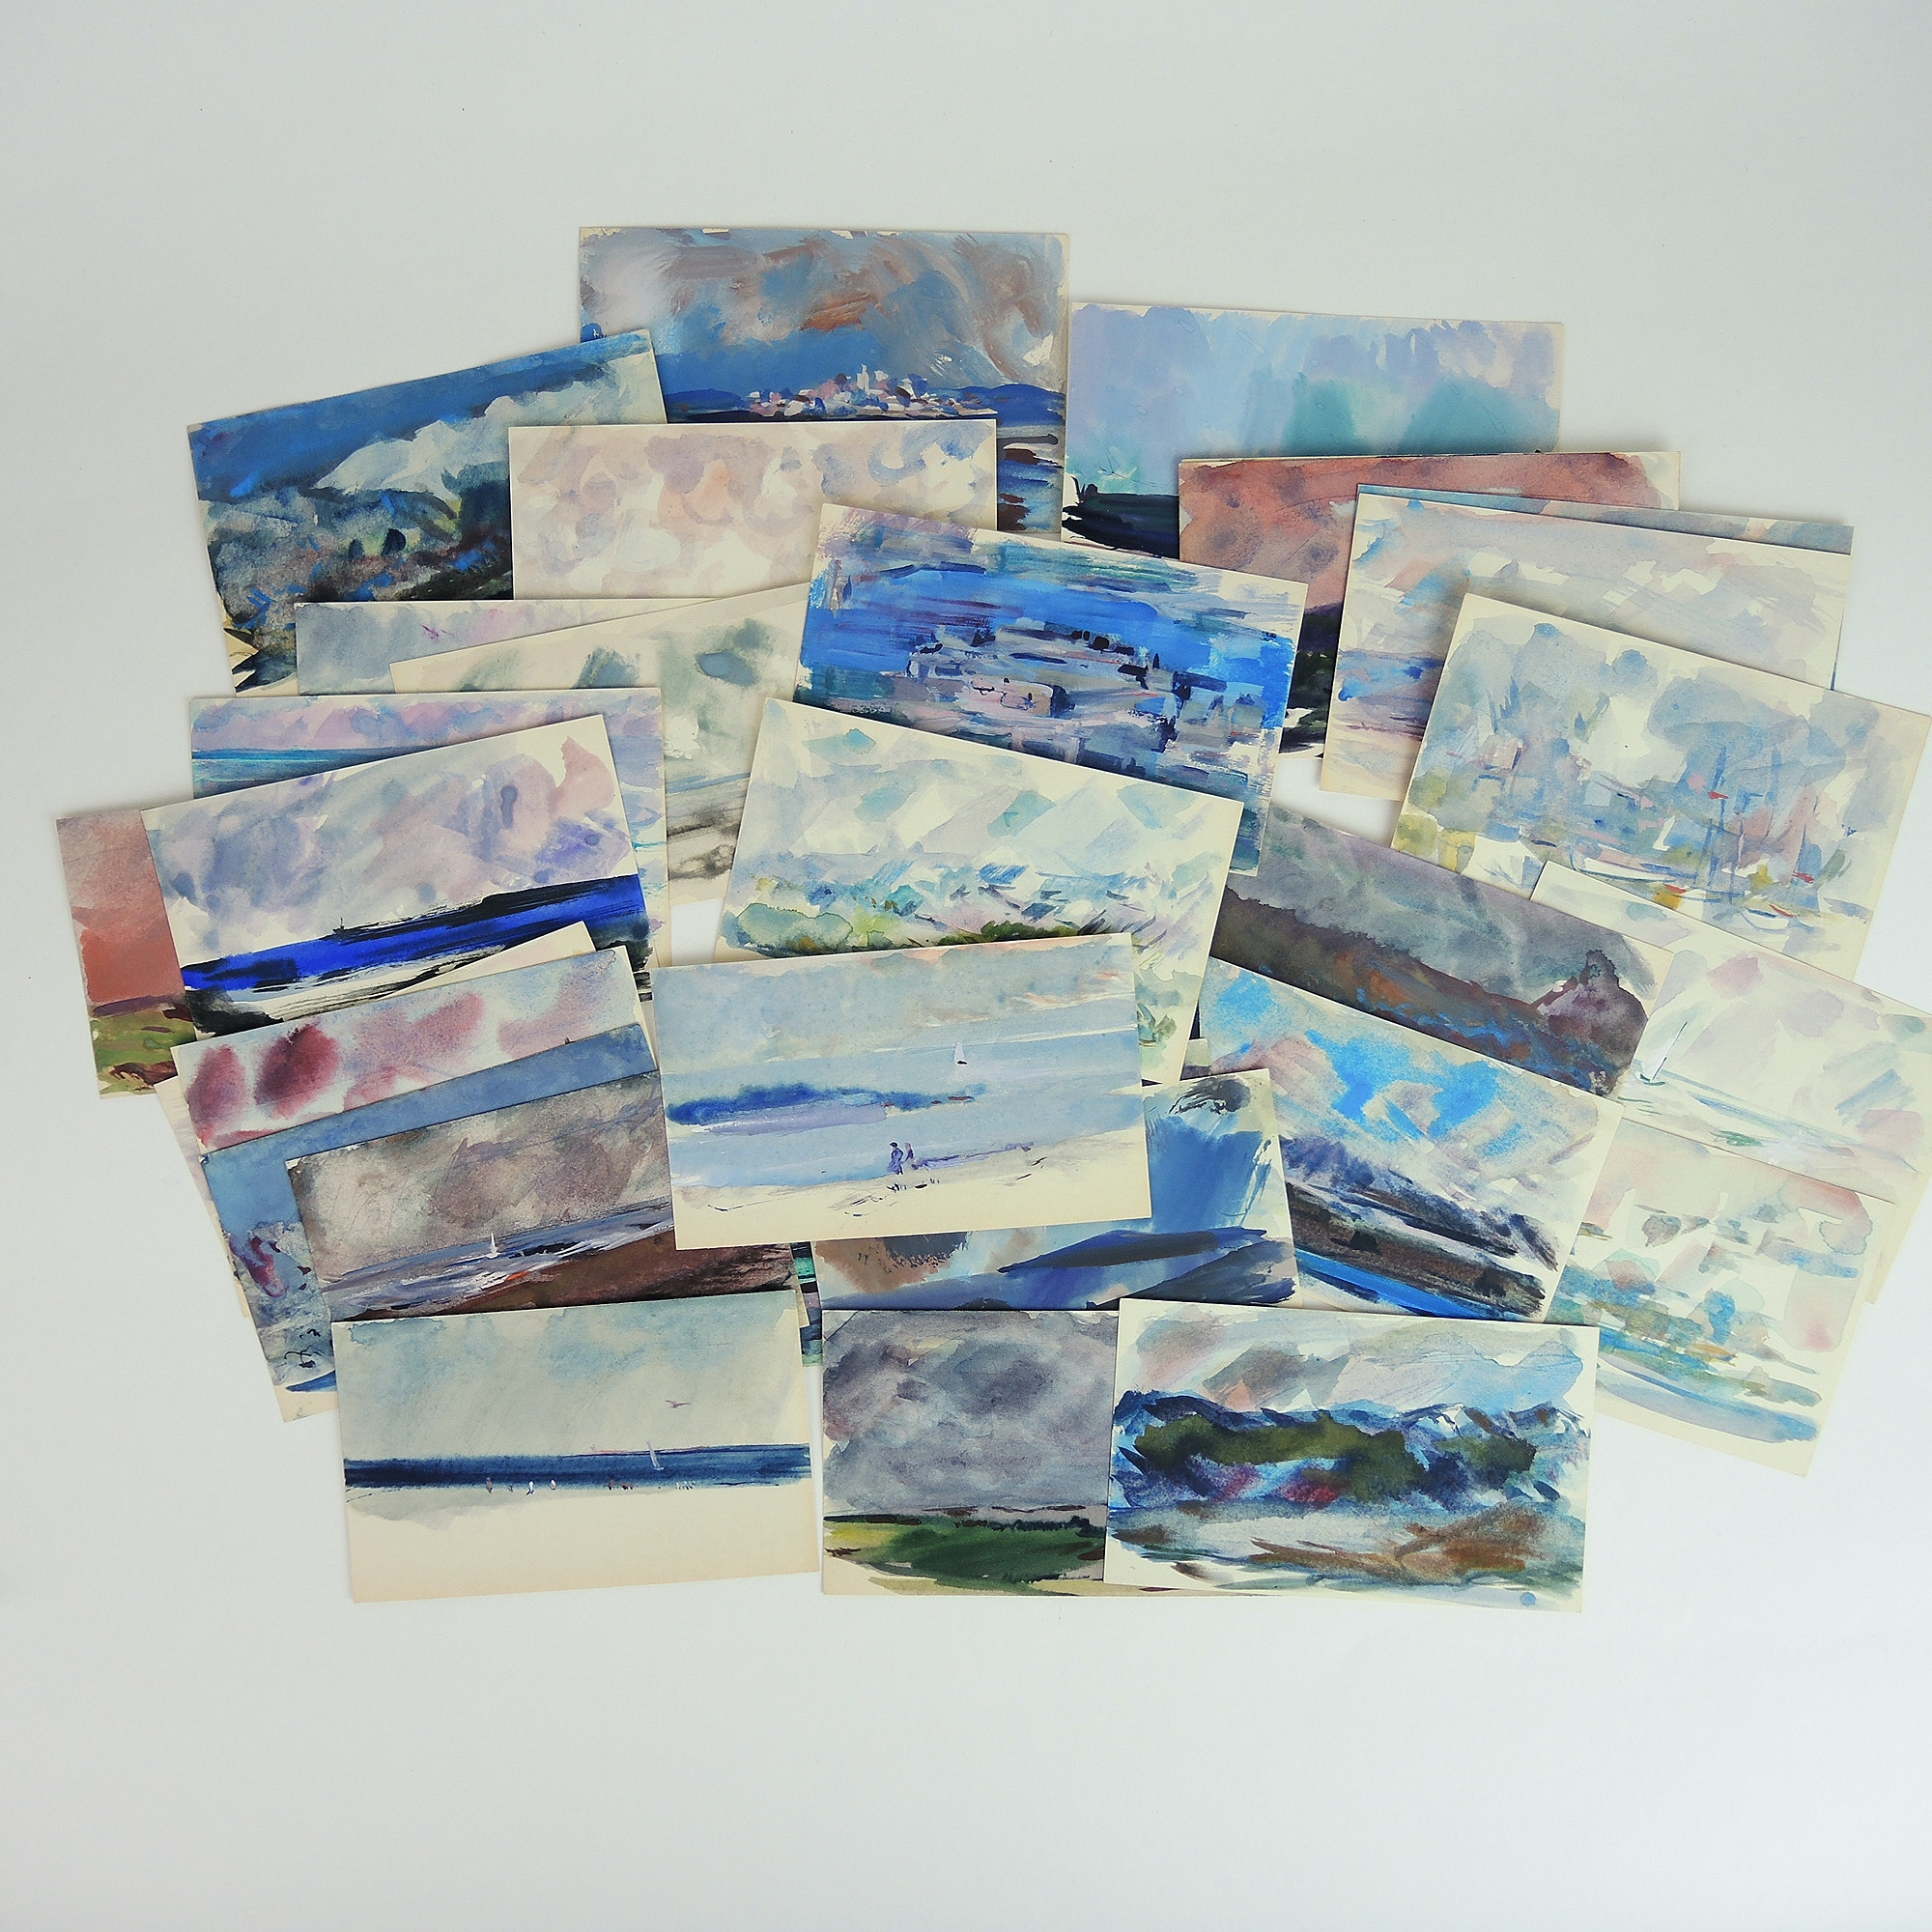 Paul Chidlaw A Collection of Intimate Mixed Media Paintings on Cards